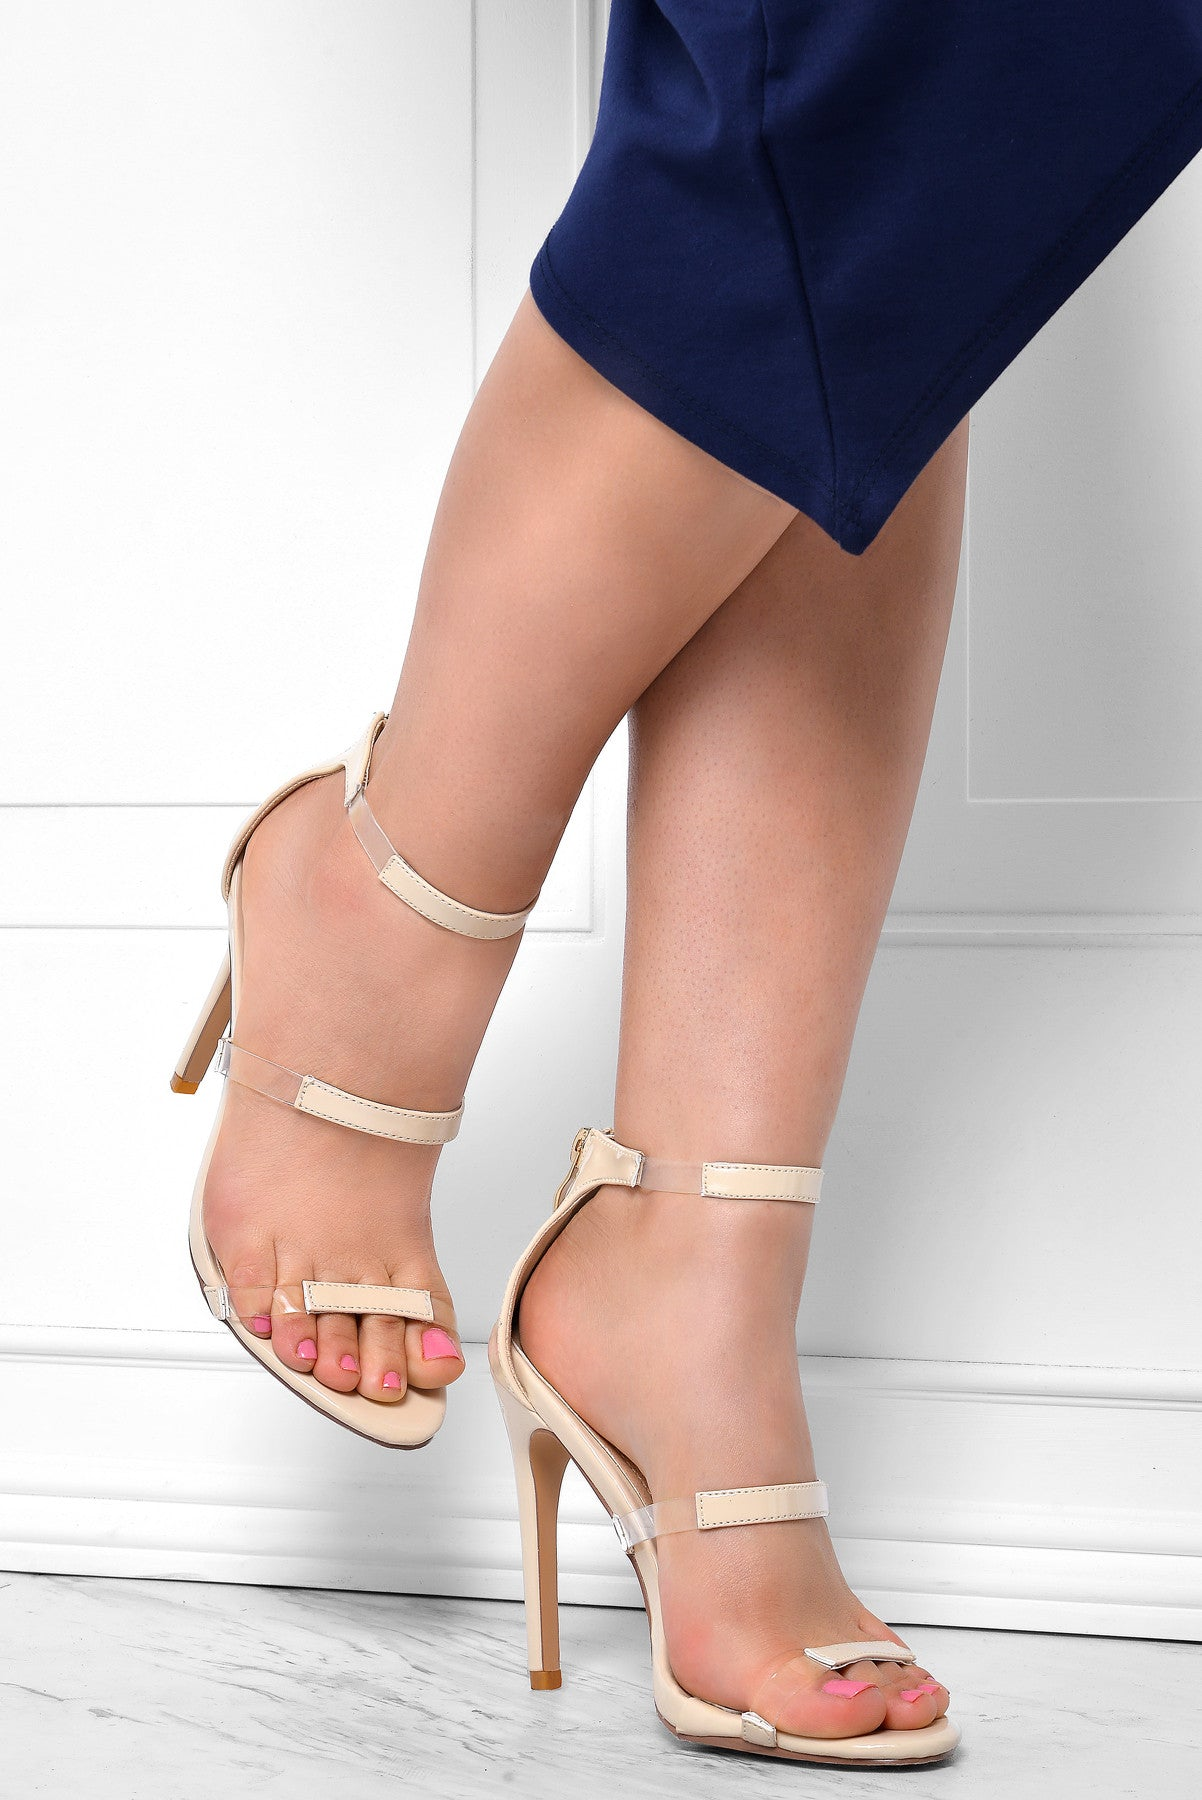 Keep It Real Nude Heels - Fashion Effect Store  - 2